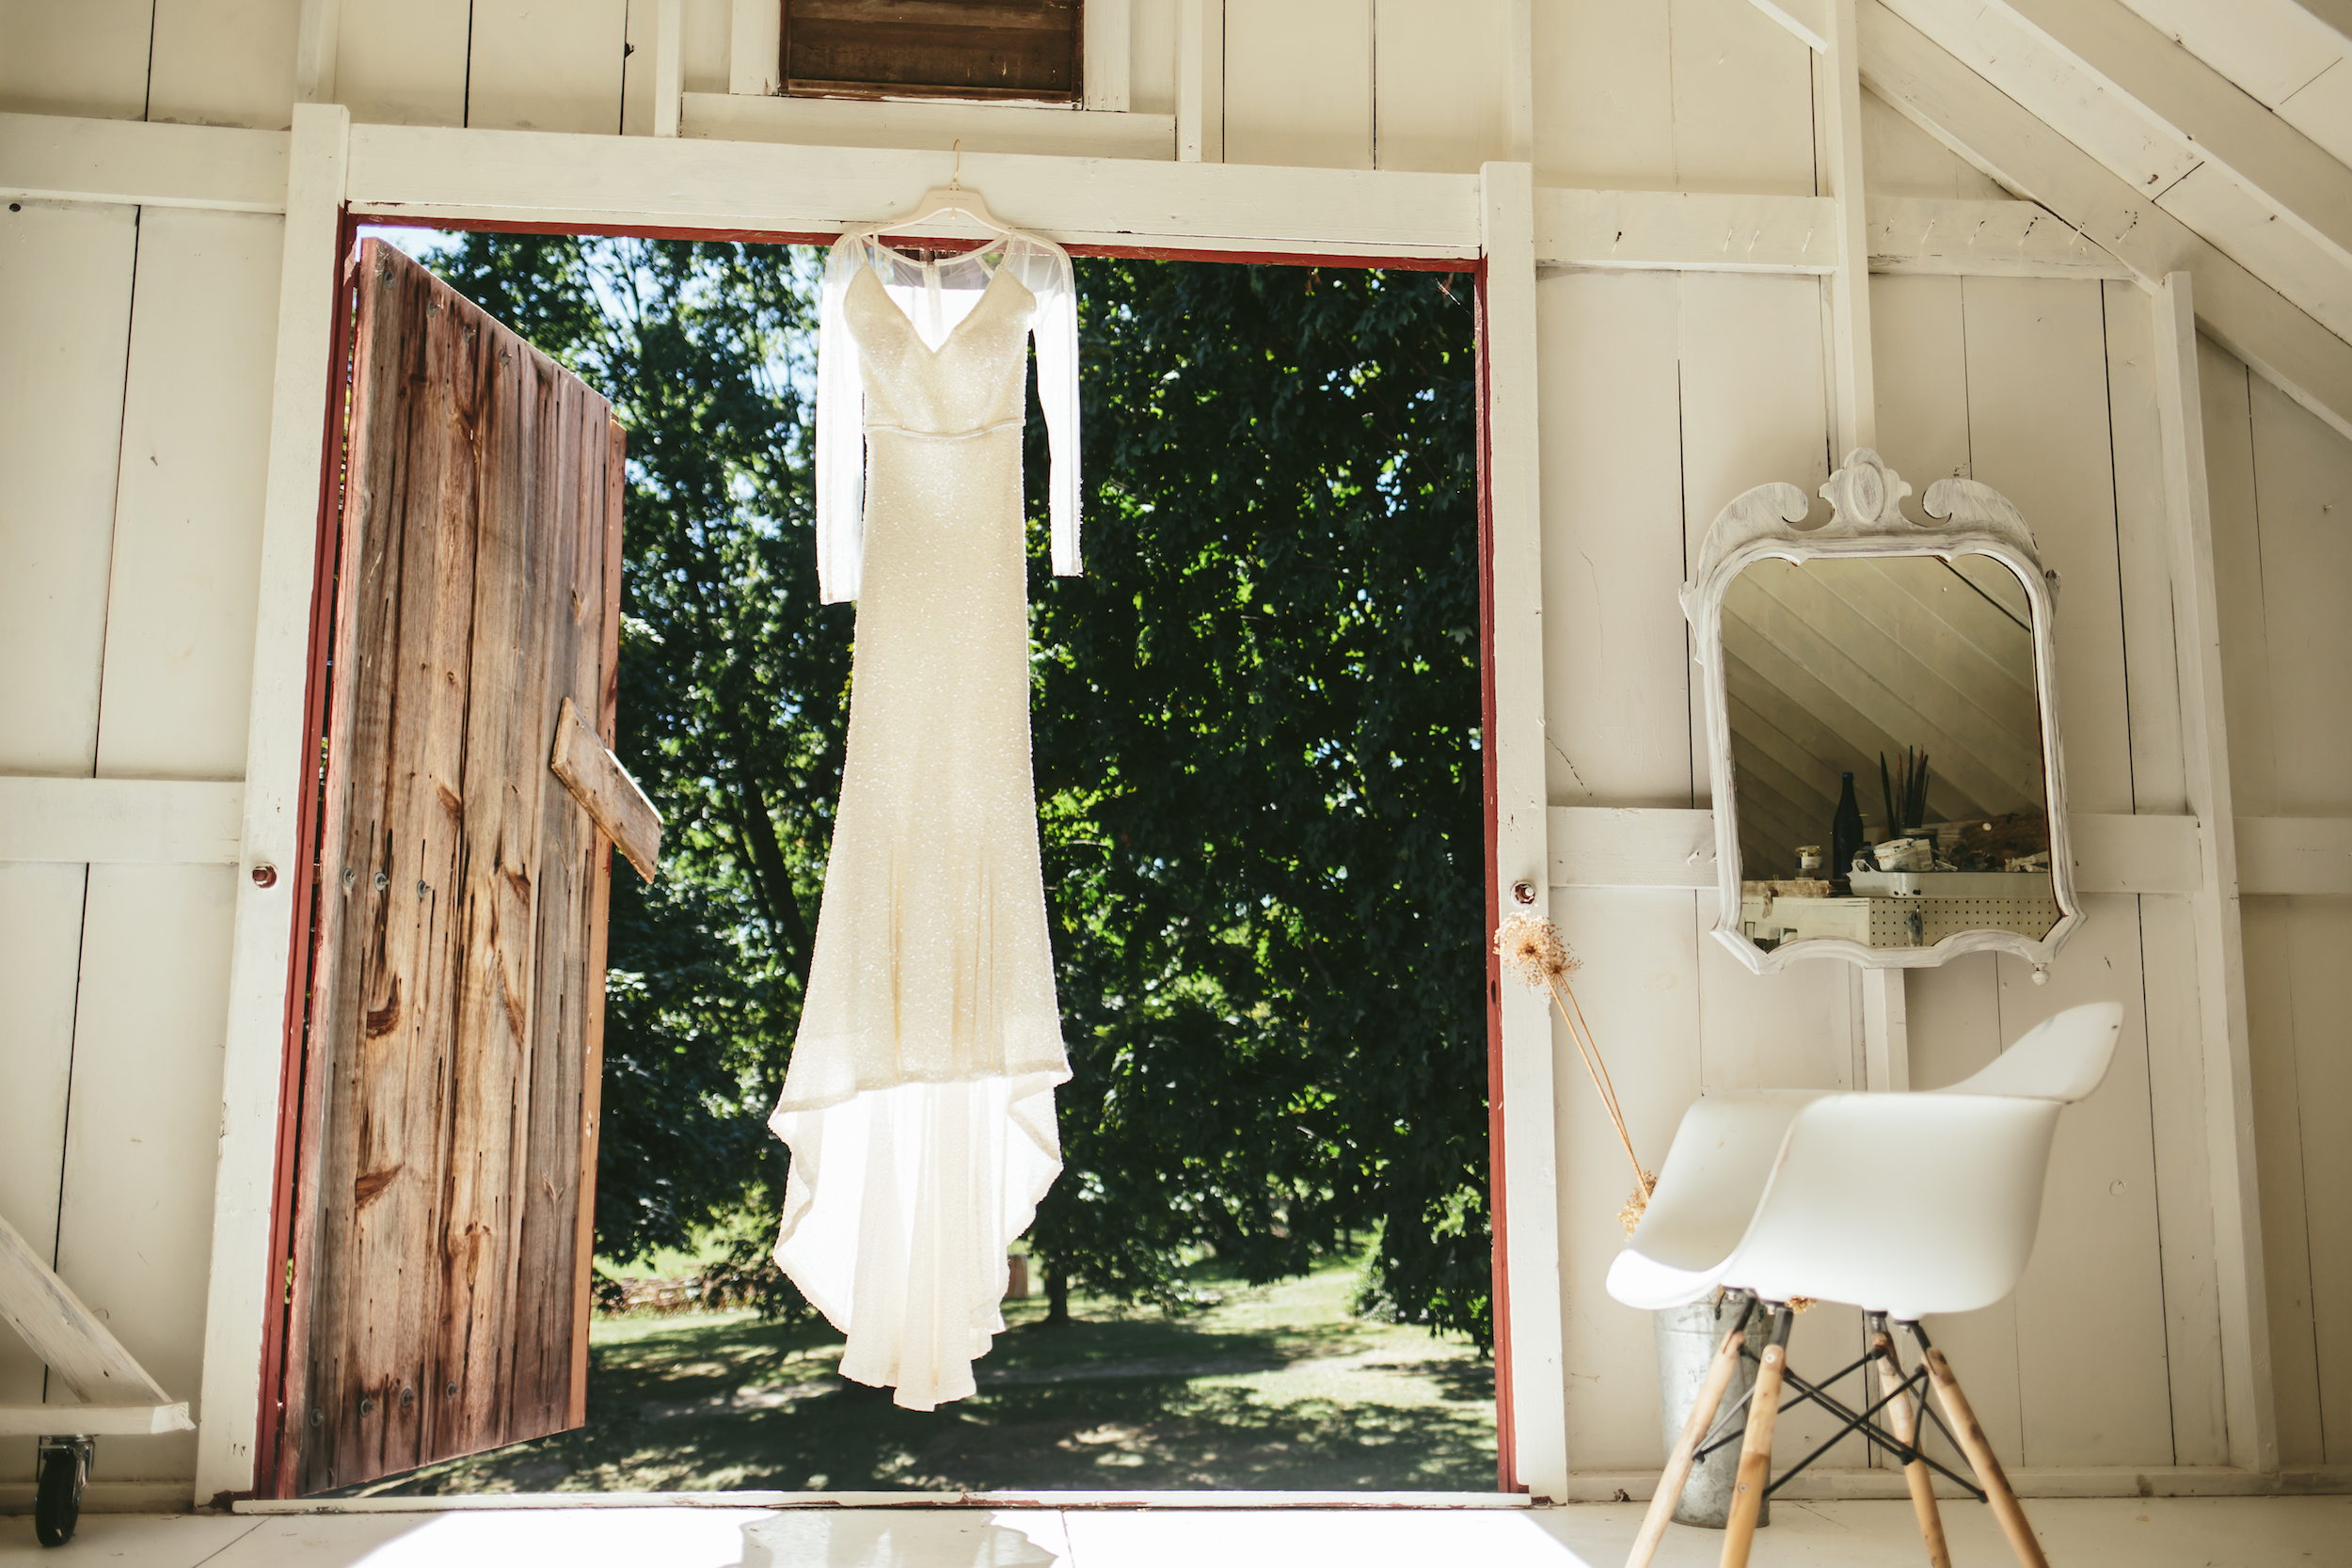 hudson-valley-farm-weddings-pioneer-farm-weddings-warwick-ny-white-wedding-dress-in-barn.jpg